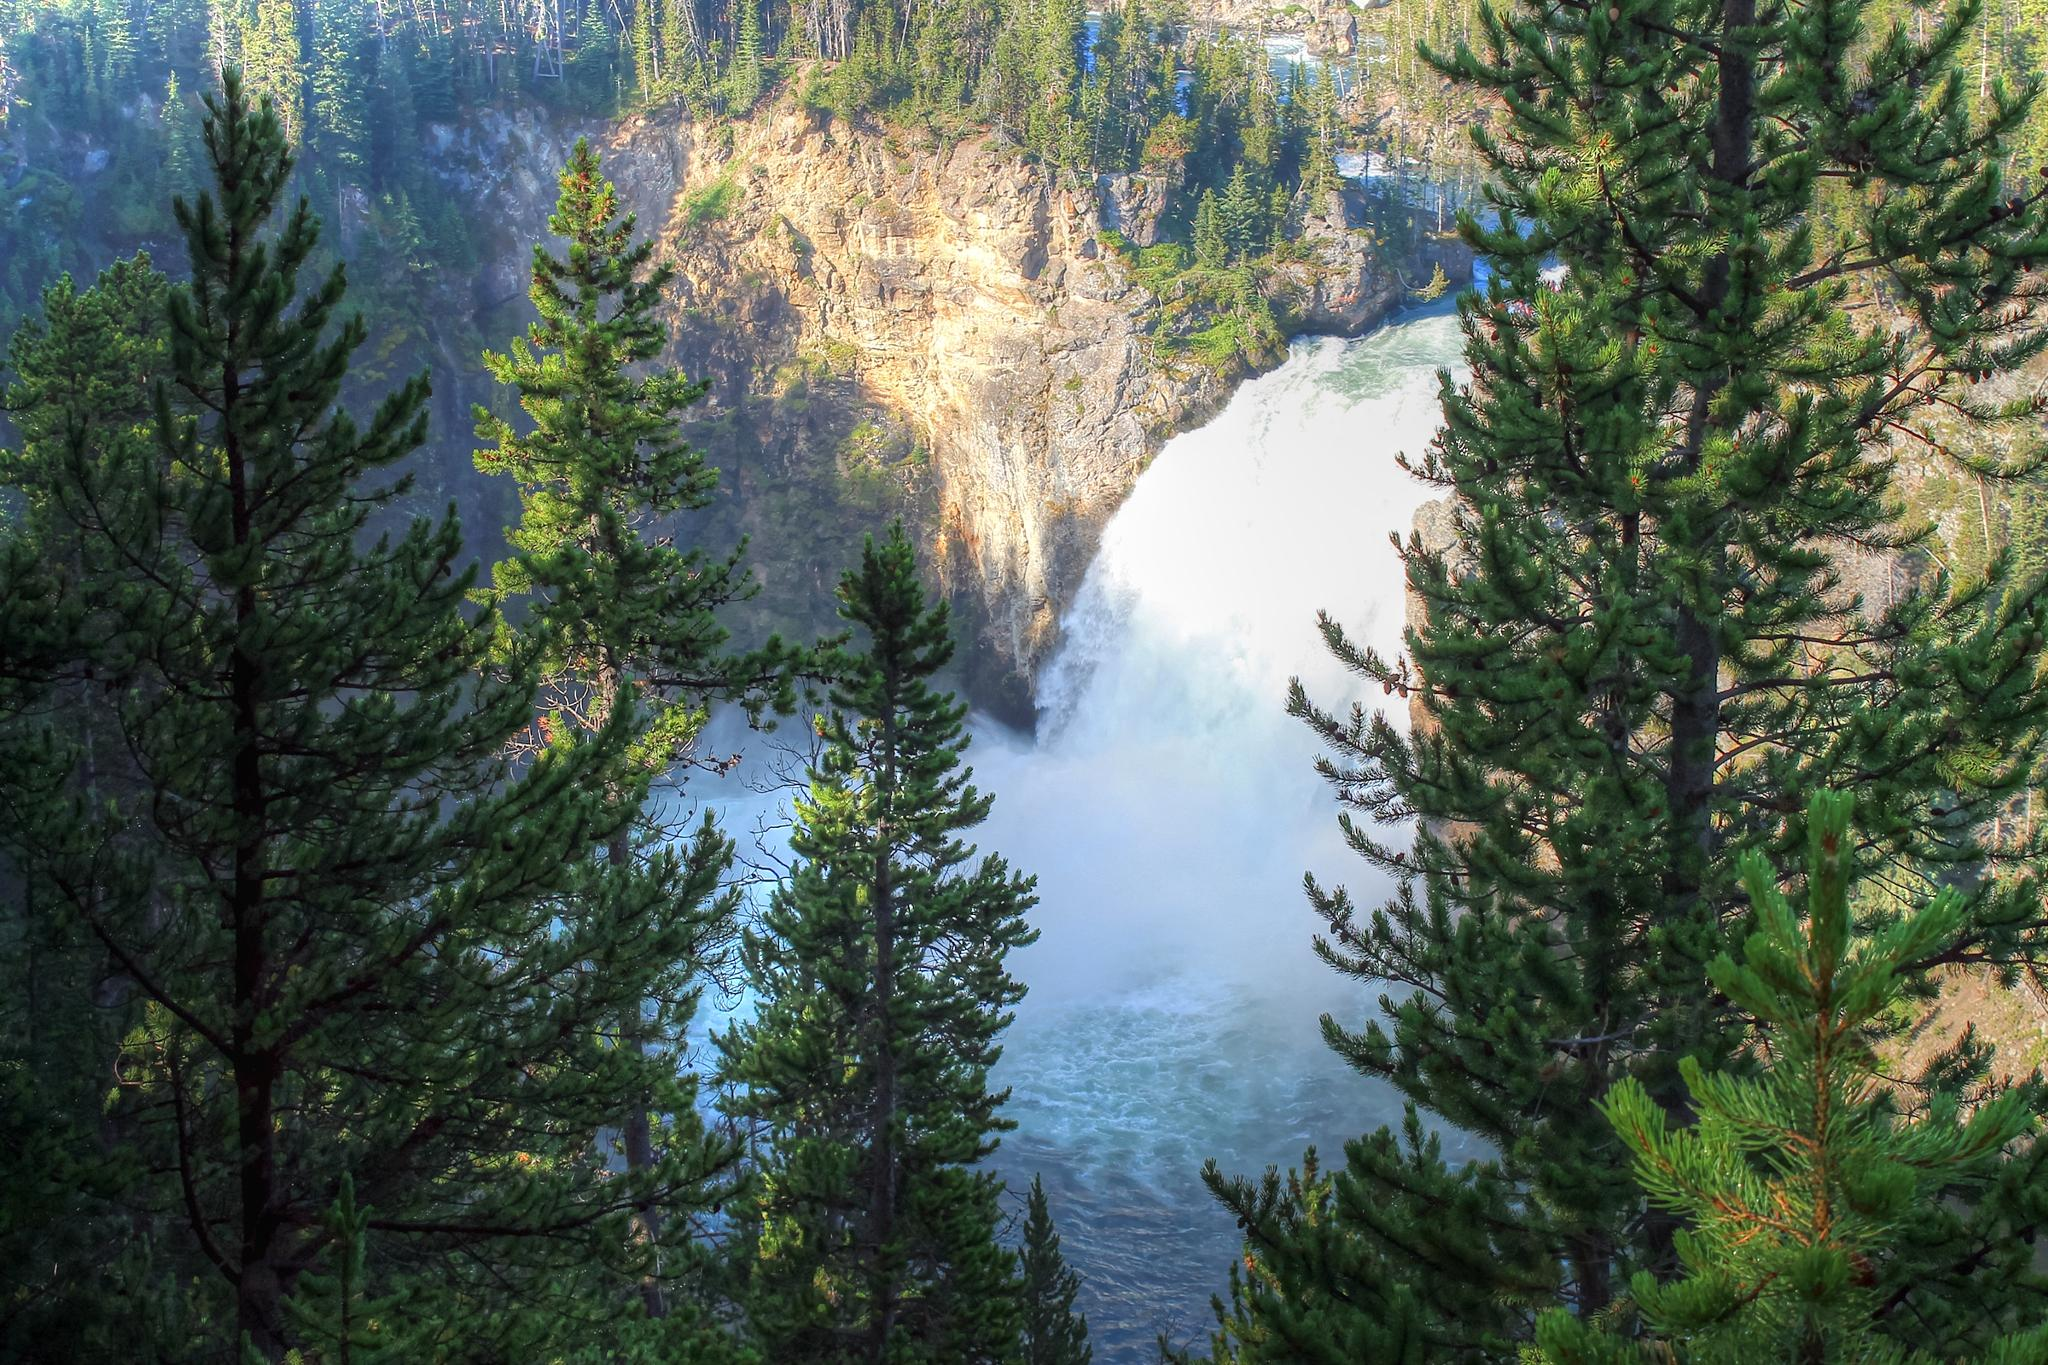 Upper Falls of the Yellowstone by Barry Houser